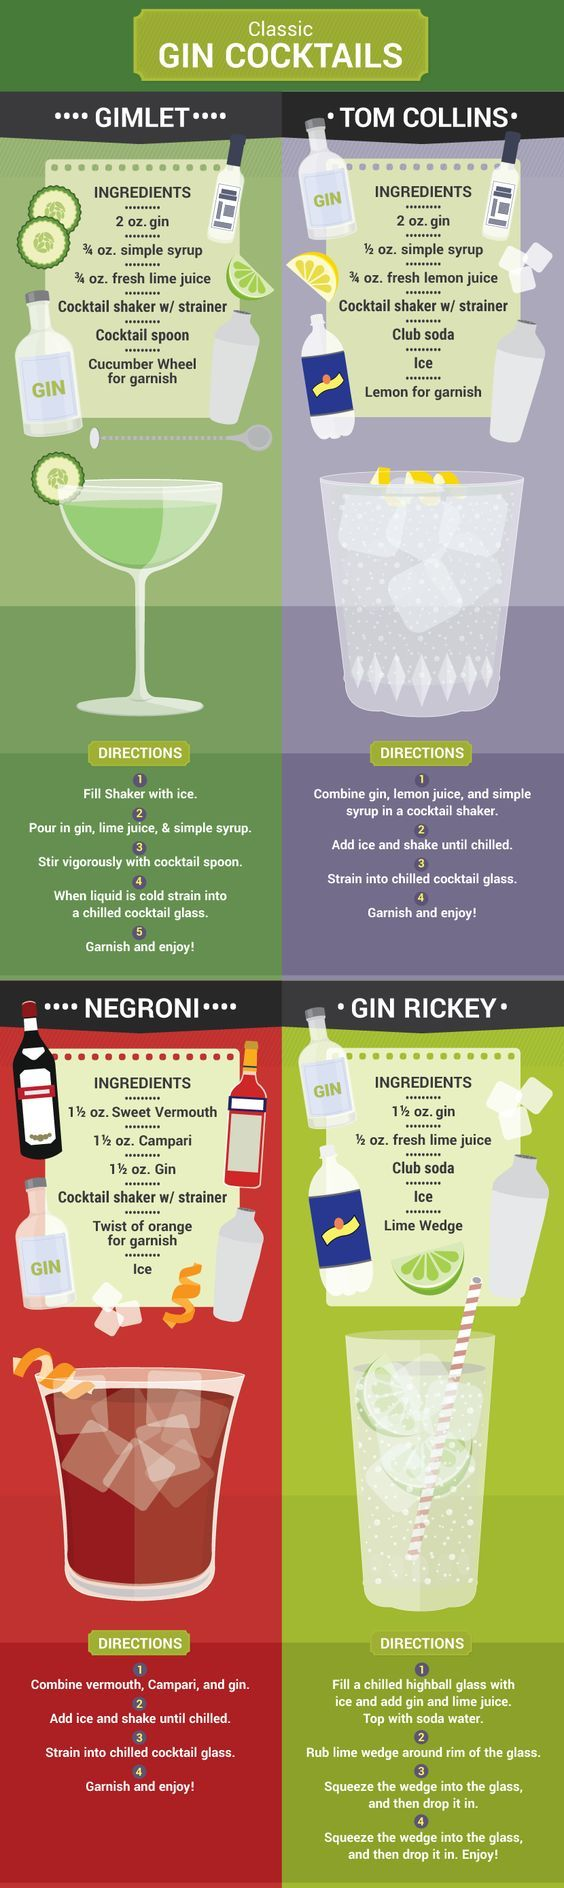 Classic Gin Cocktails - Gin Guide